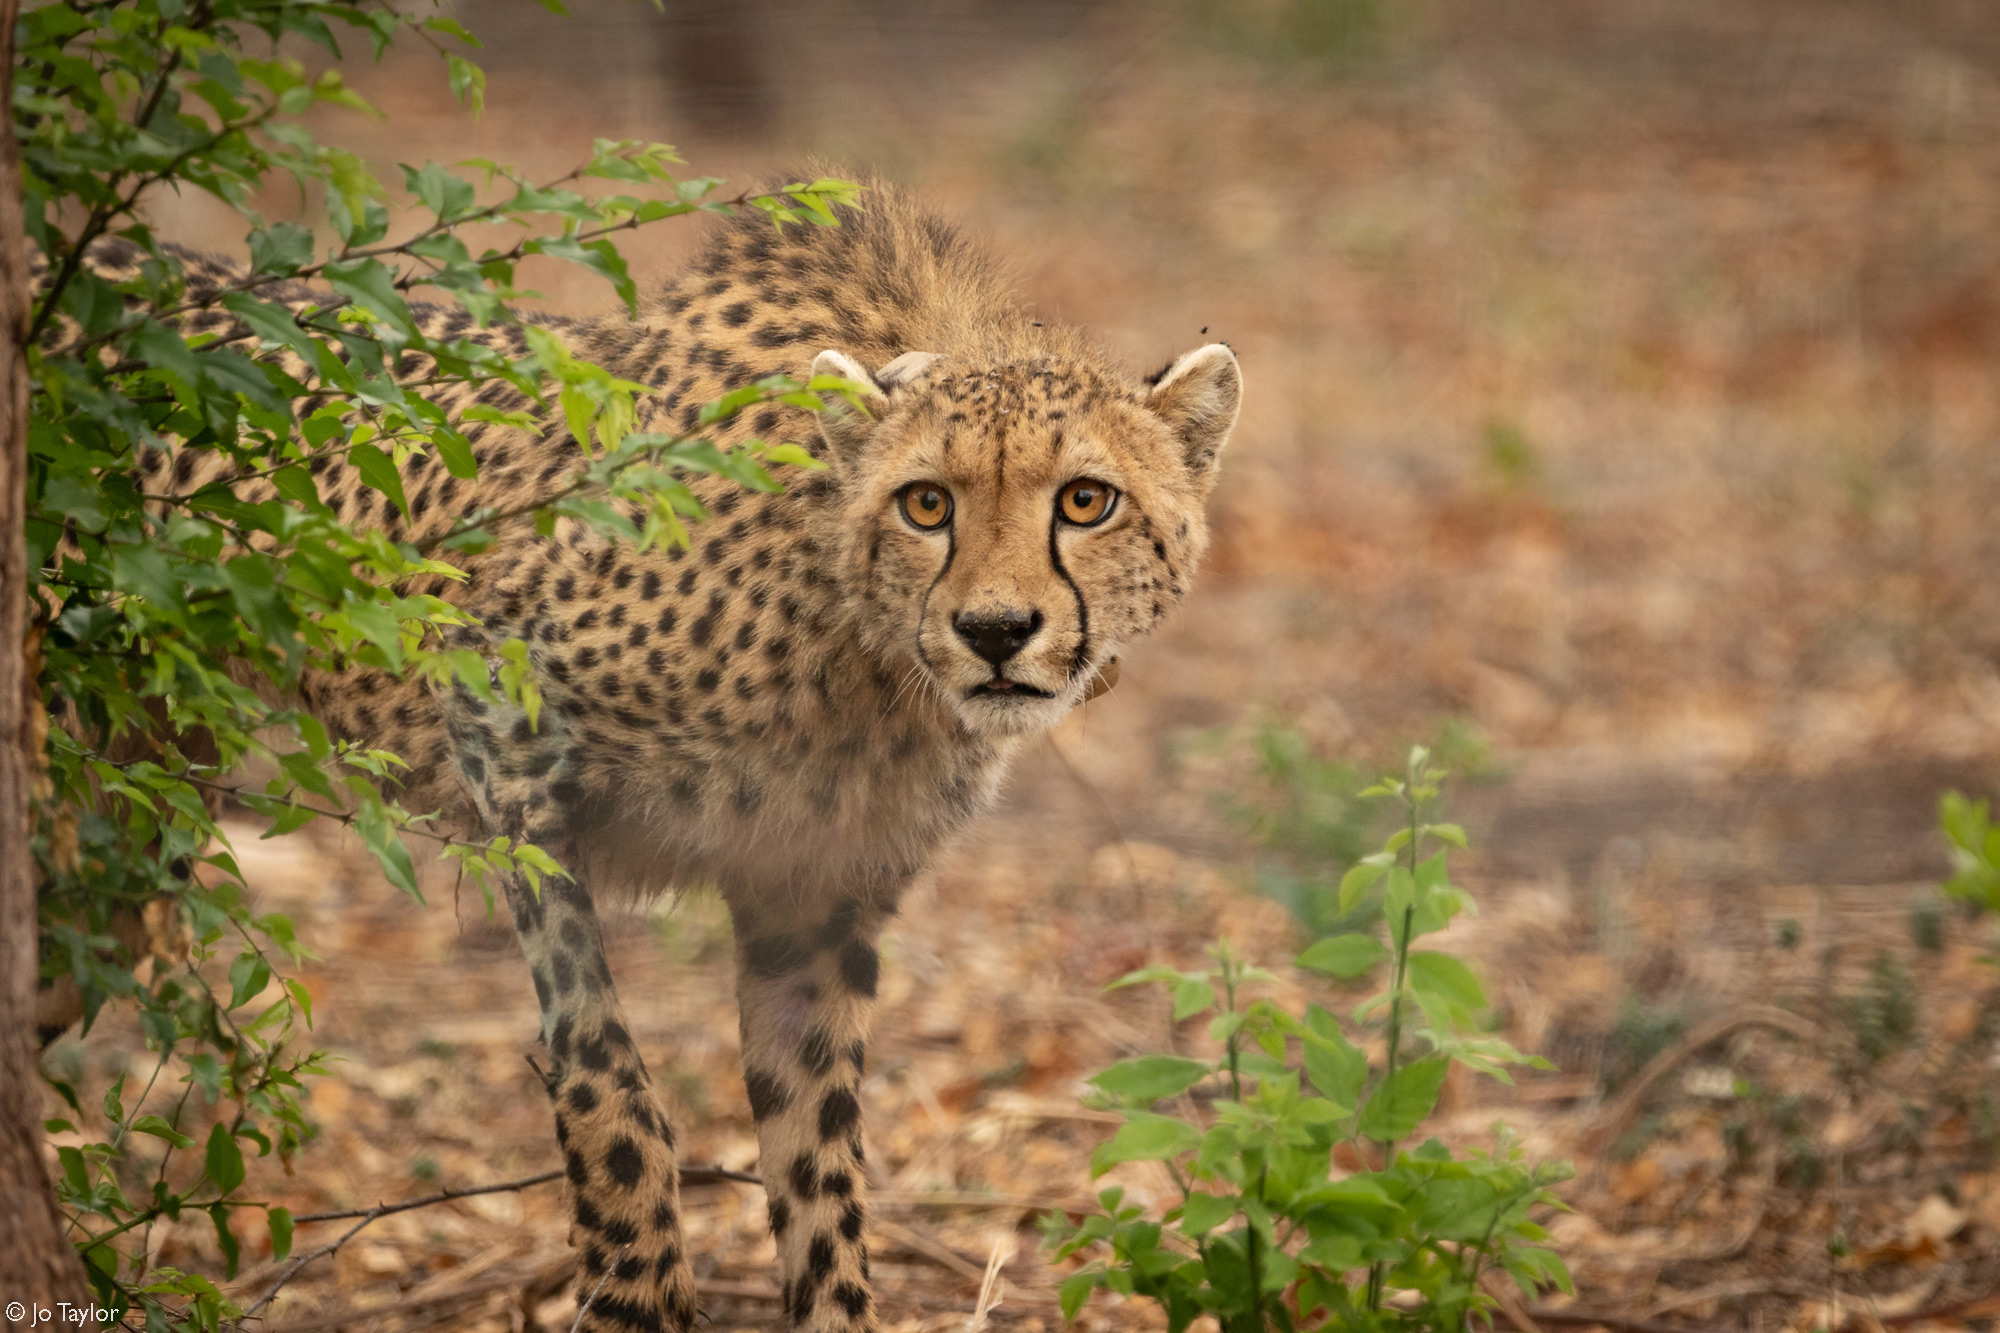 The female cheetah that we drove for over 55 hours cautiously explores her new home © Jo Taylor